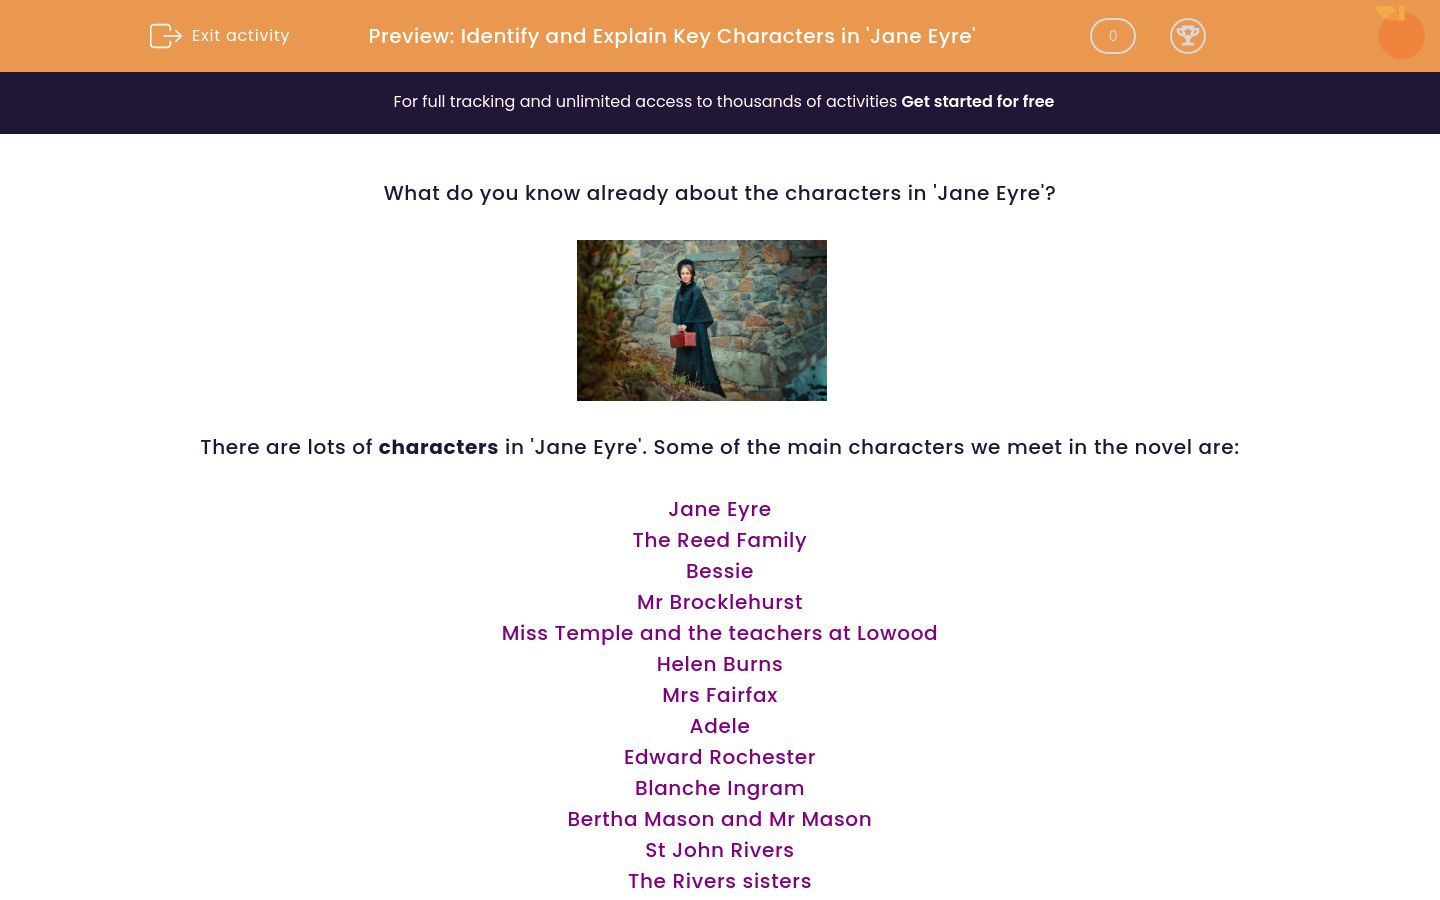 'Identify and Explain Key Characters in 'Jane Eyre'' worksheet